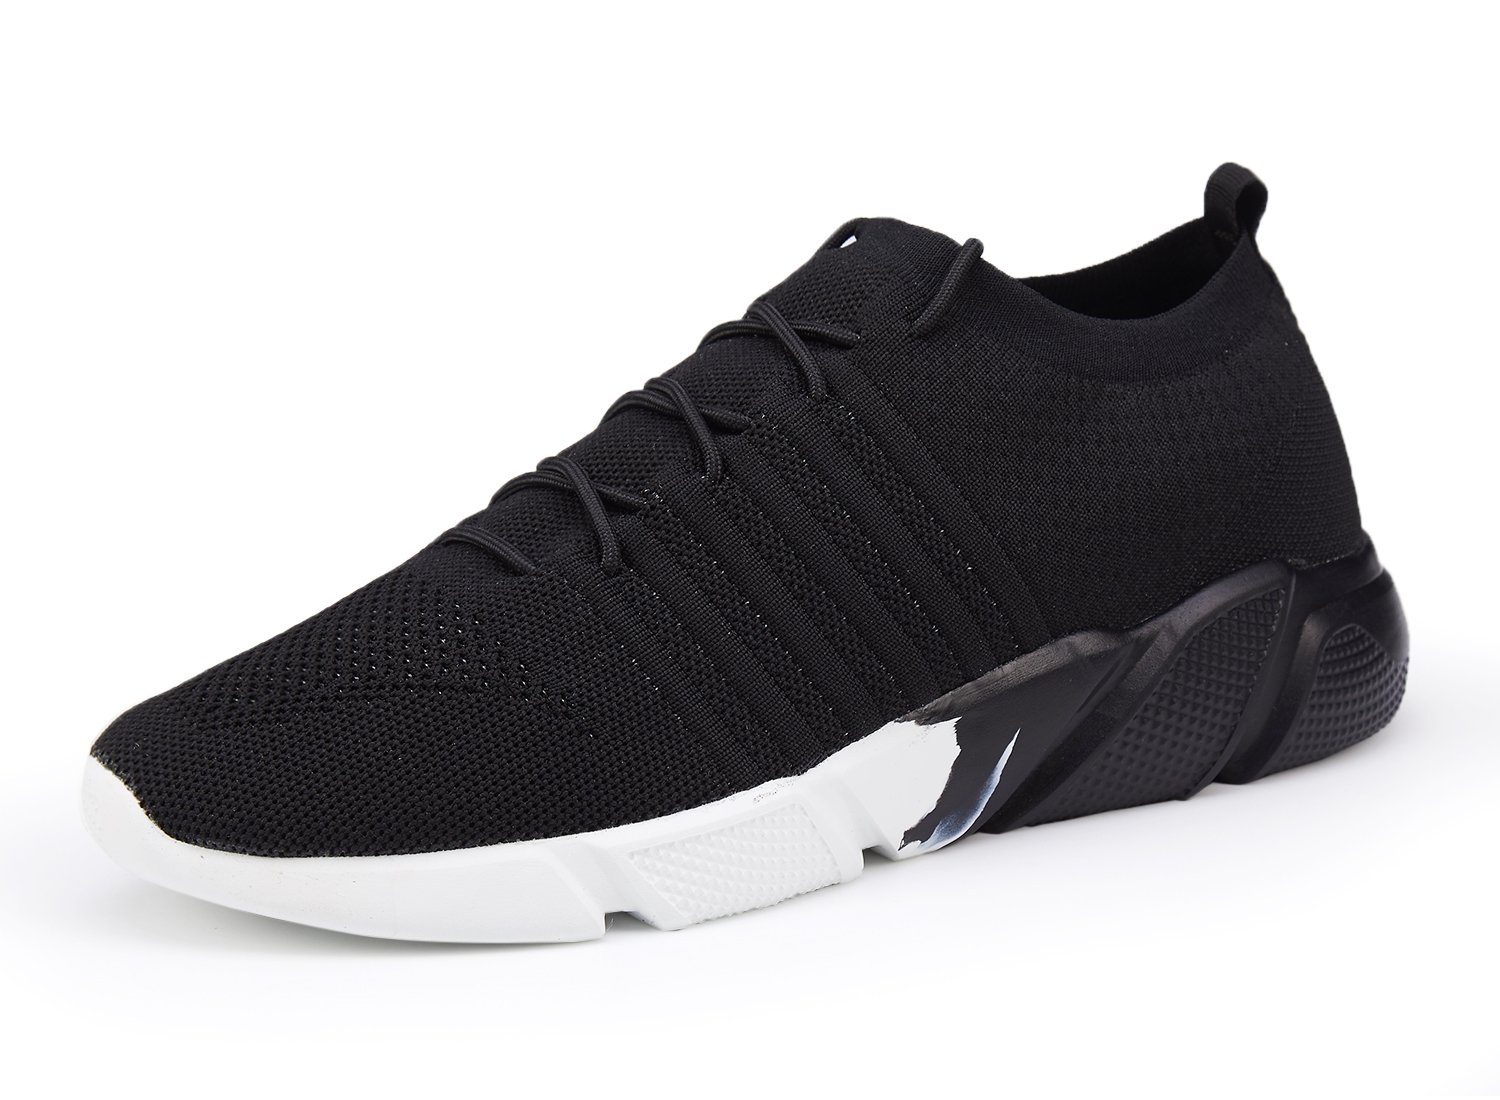 Men's Running Shoes Fashion Breathable Sneakers Mesh Soft Sole Casual Athletic Lightweight Walking Shoes 12US/46EU,MEN|Black White